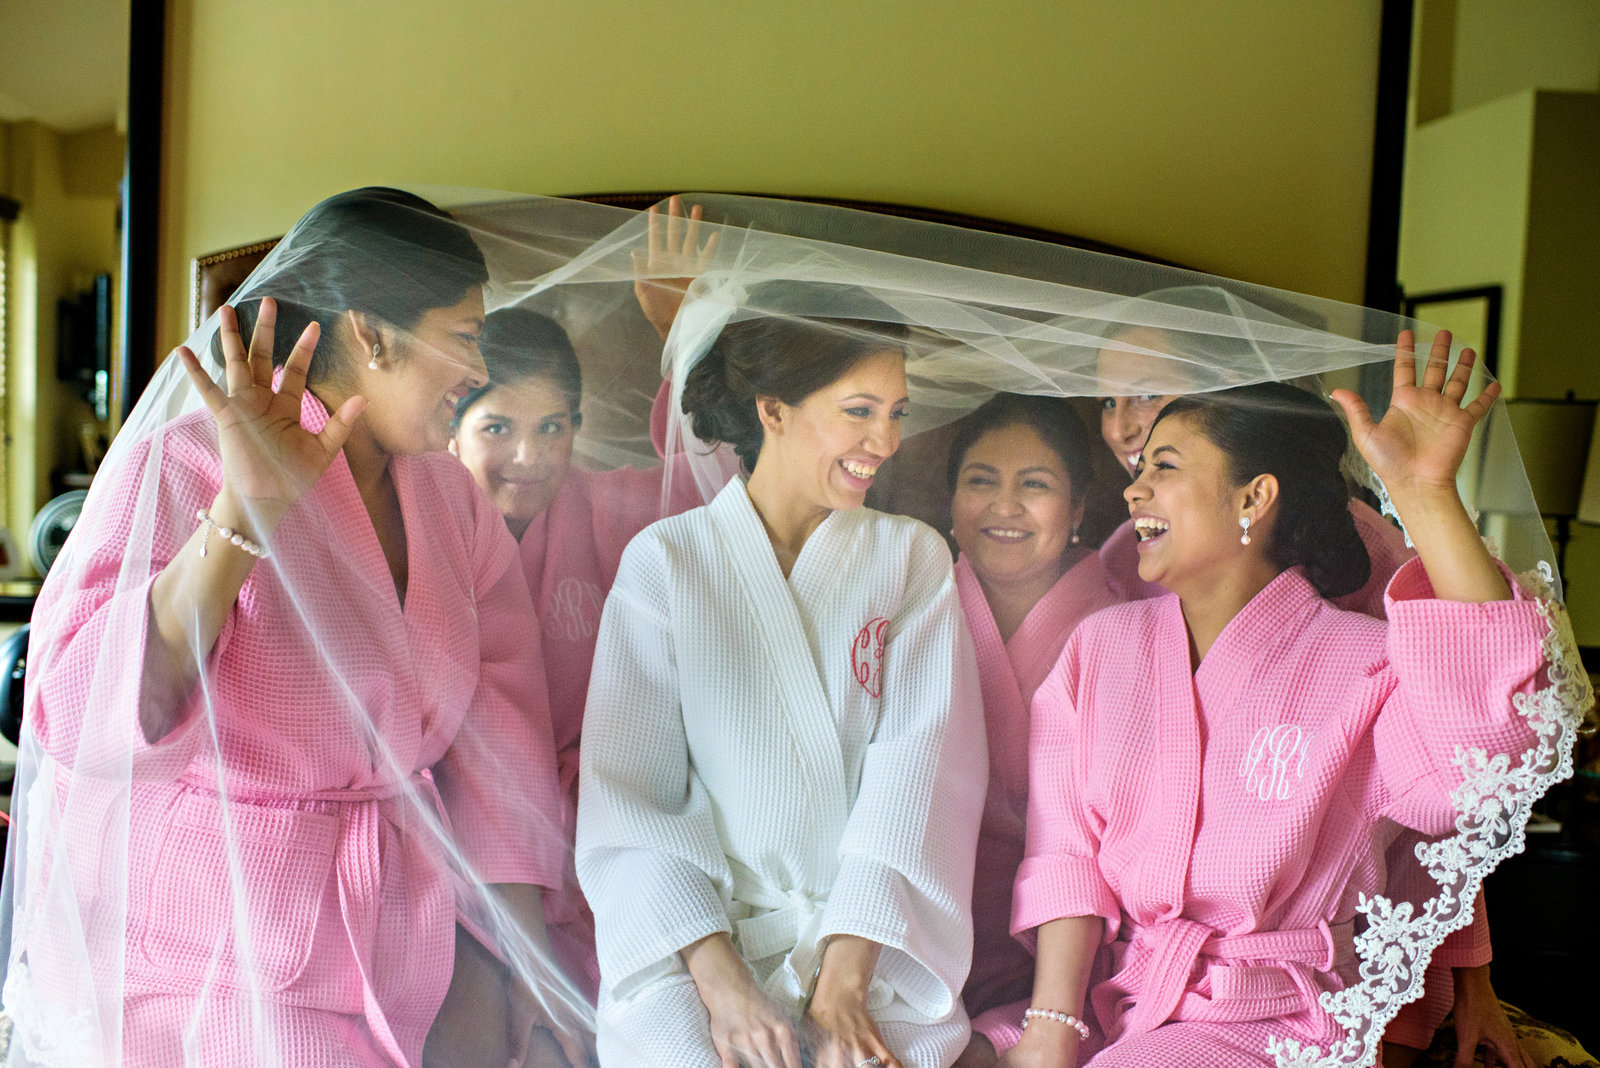 A bride and her bridesmaids under the veil in her parents home before the wedding.